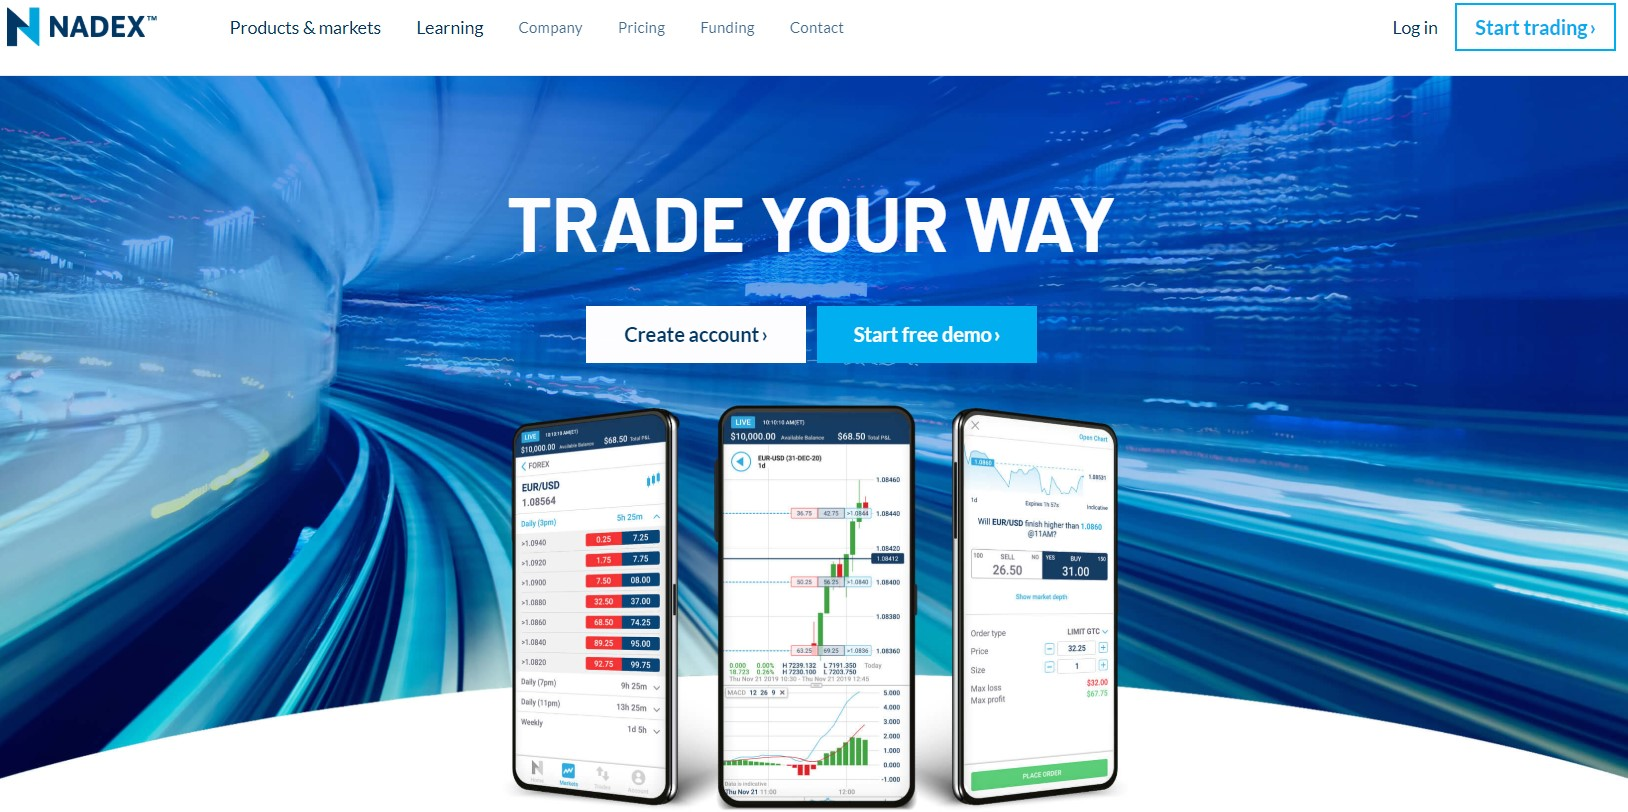 CFTC Forex Brokers - AtoZ Markets